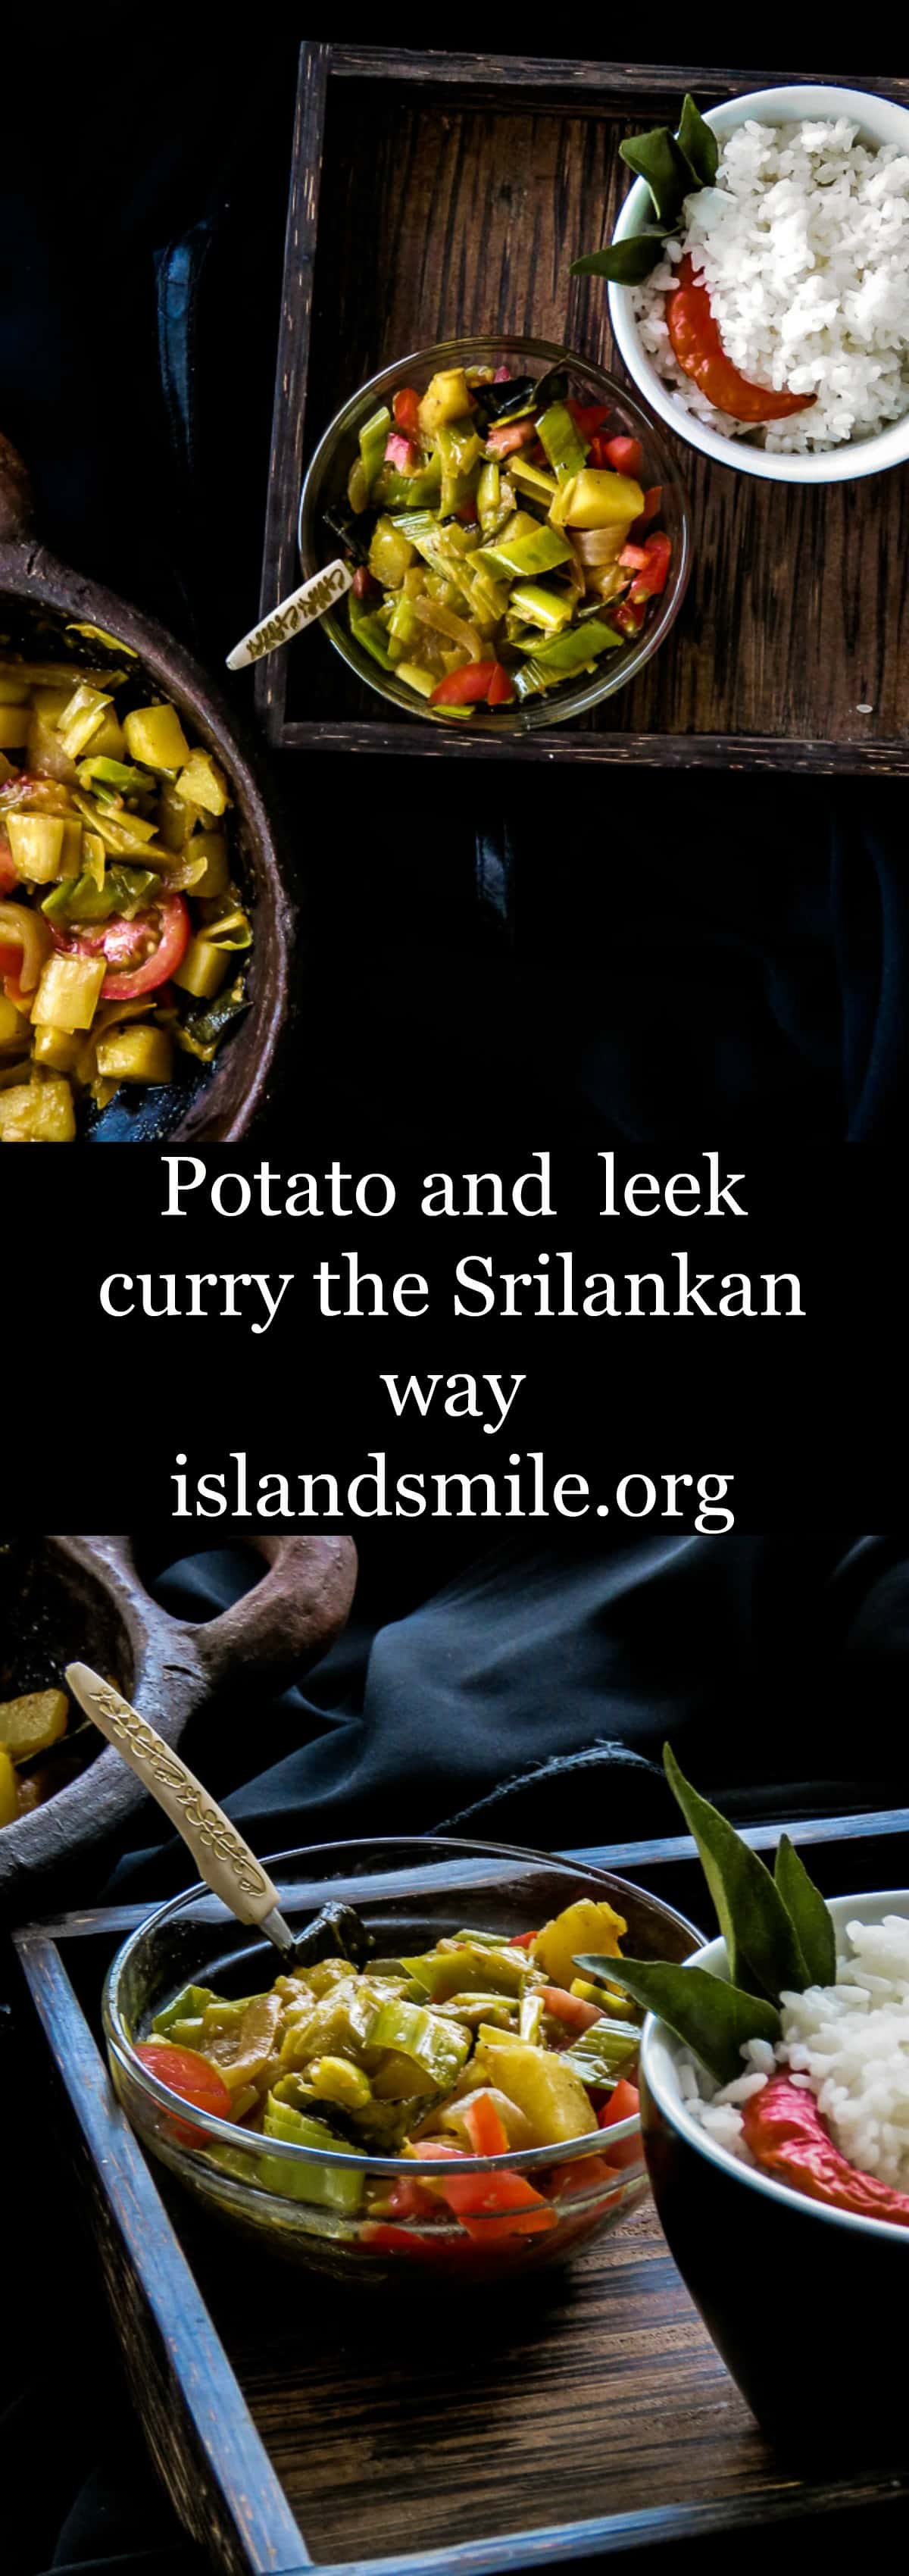 Potato and leeks currysrilankan and recipes for the family potato and leeks currya vegetarian and vegan dish which is also srilankan 4888 forumfinder Gallery